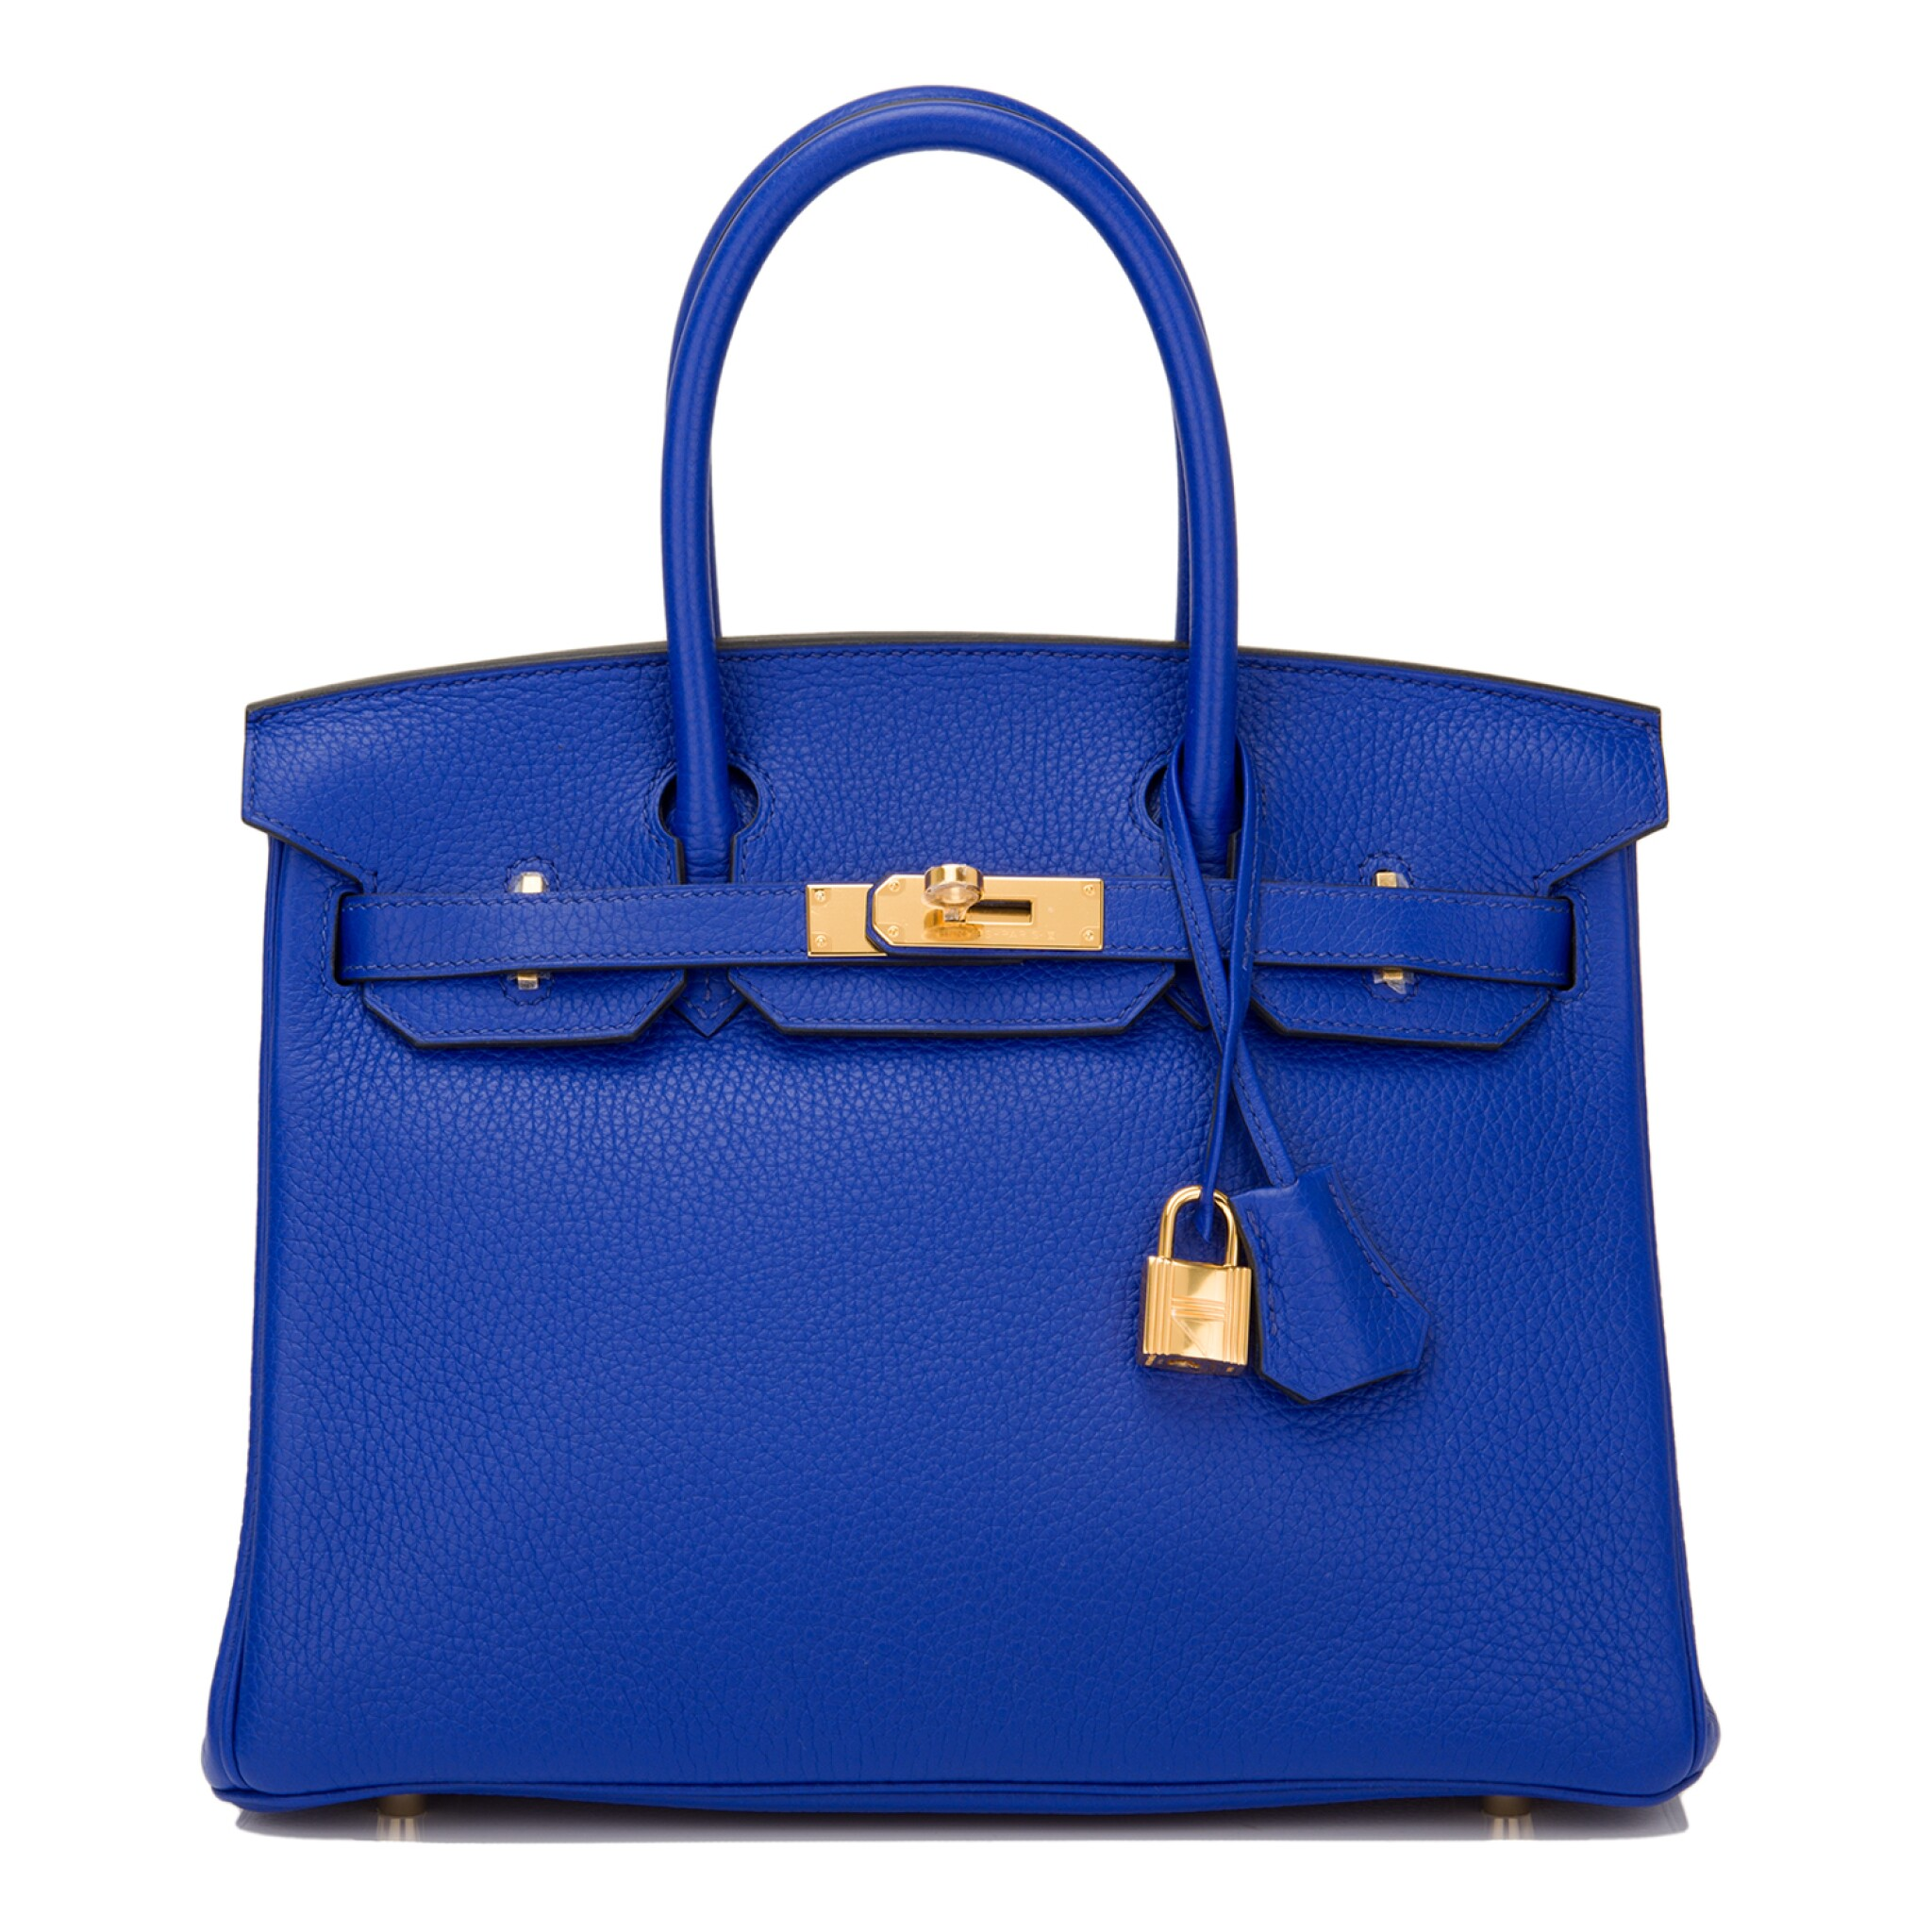 View full screen - View 1 of Lot 13. Hermès Bleu Electrique Birkin 30cm of Clemence Leather with Gold Hardware.